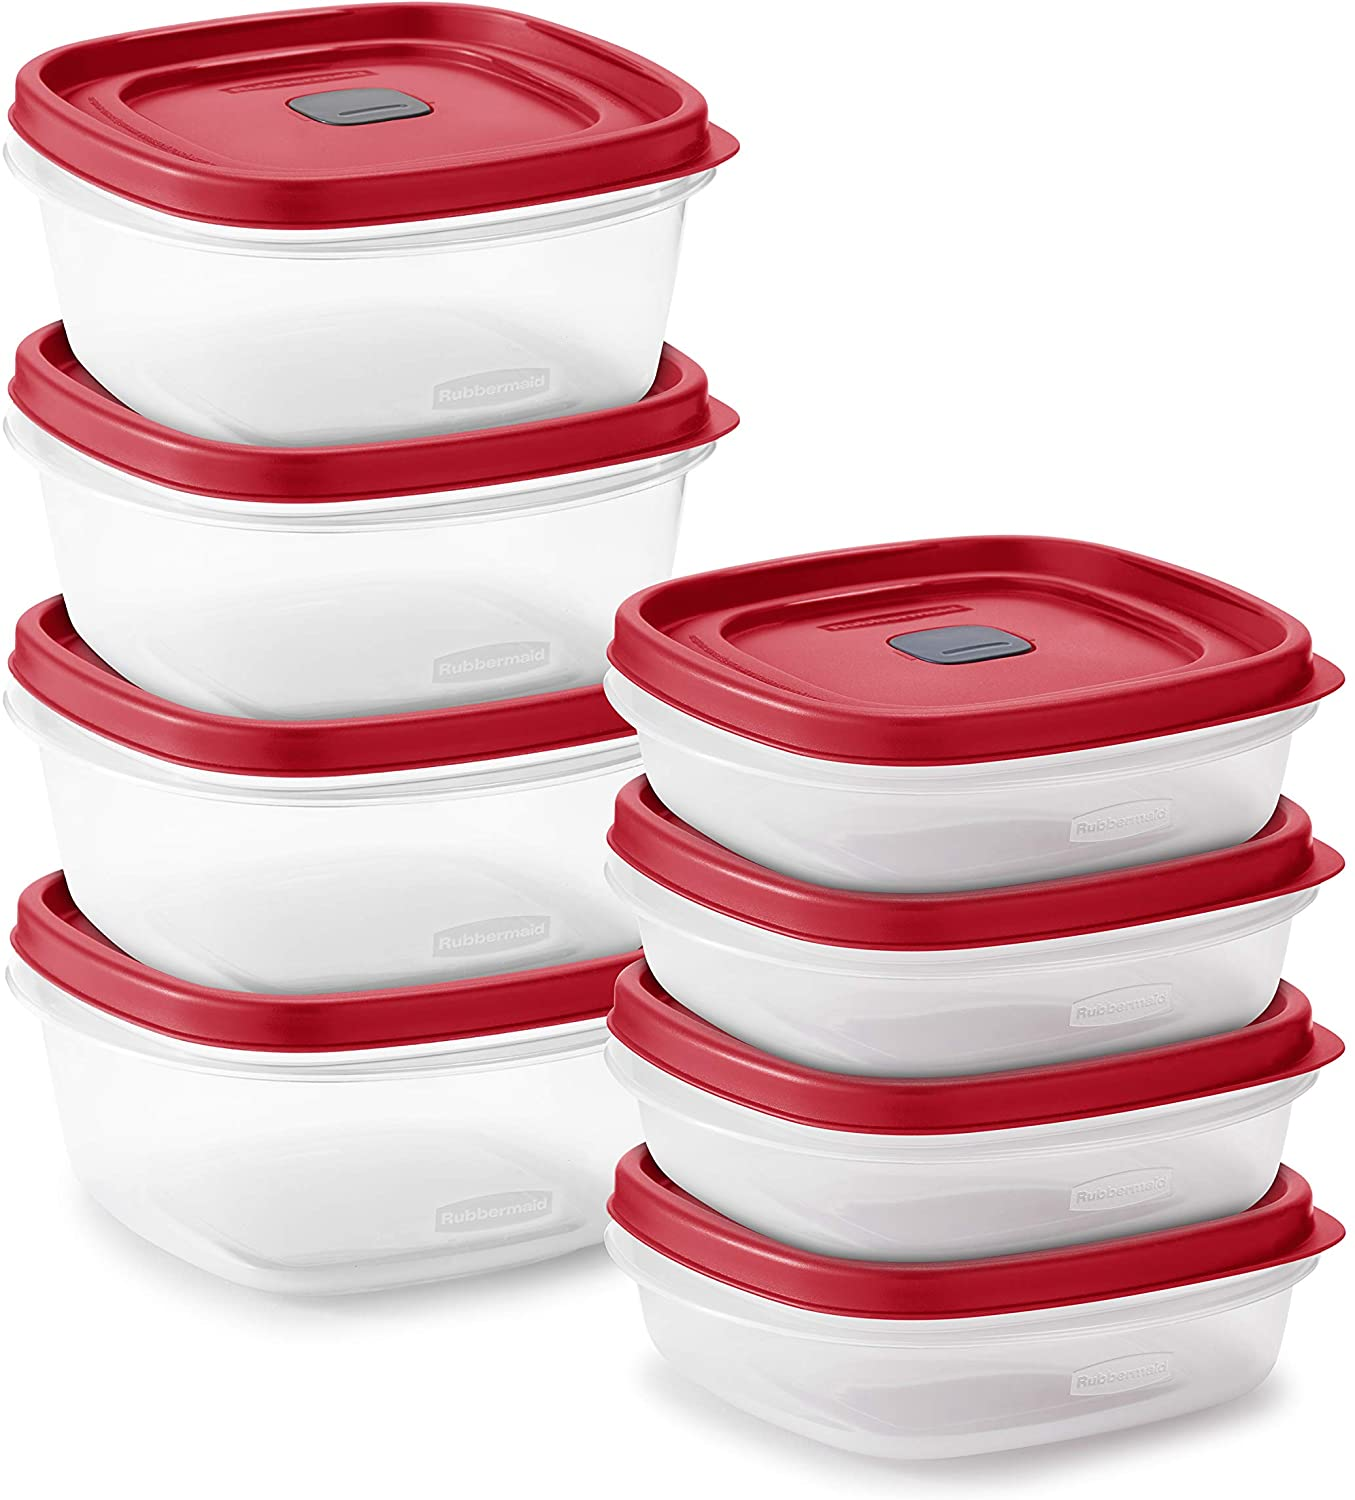 Rubbermaid Easy Find Vented Lids Food Storage, Set of 8 (16 Pieces Total)